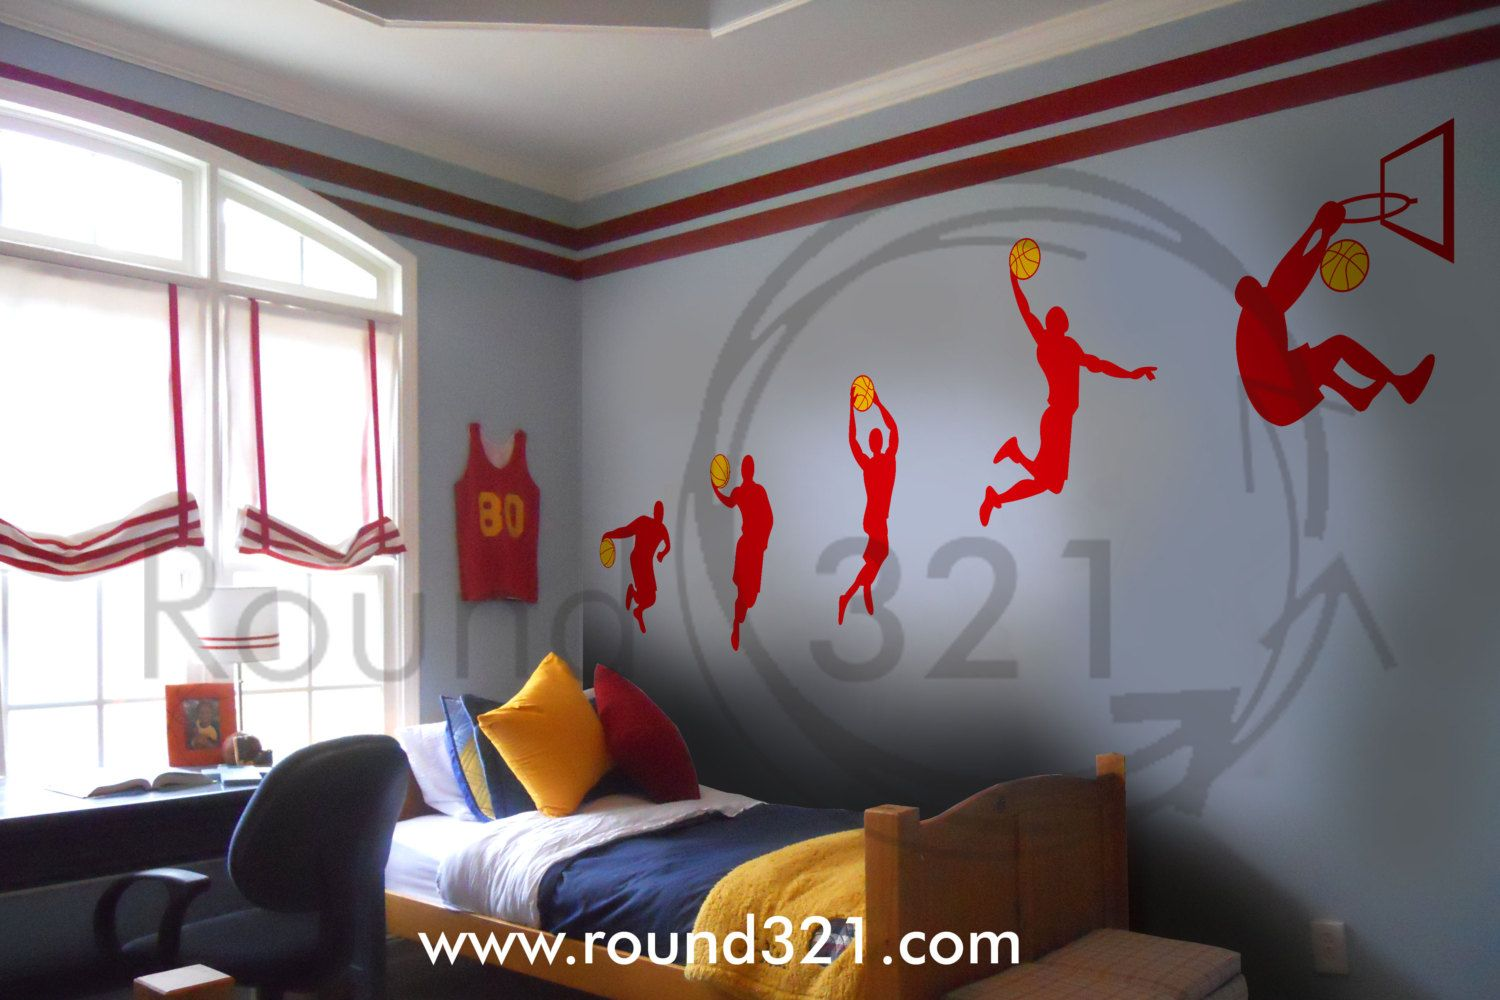 Captivating Small Basketball Dunk Sequence Wall Decal Round321com Boy Boys Nursery  Bedroom Playroom Personalized Custom Forthehome Walldecal Vinyl Amazing Pictures